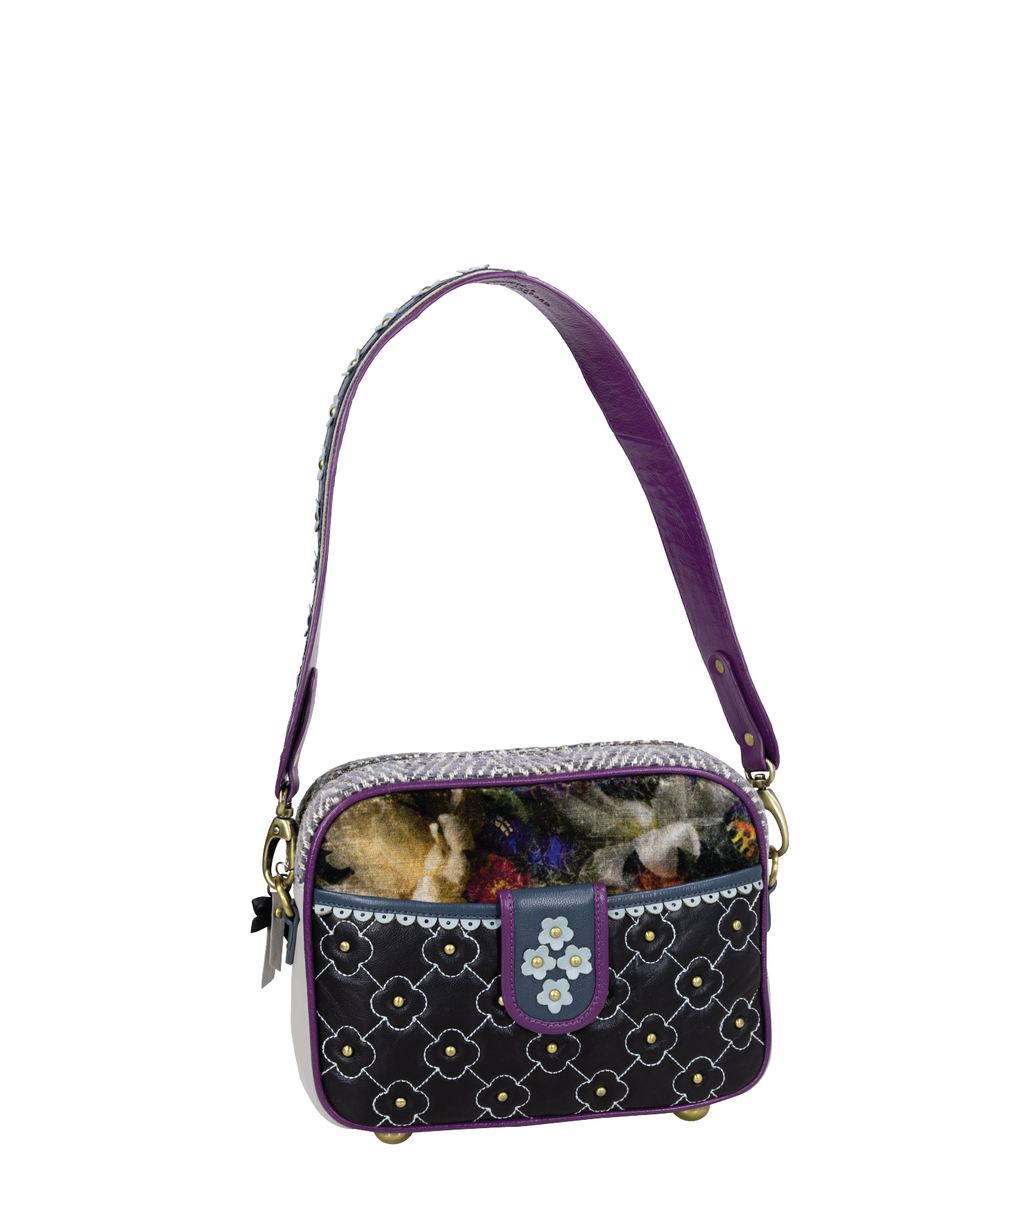 BETTY Crossbody Bag - Twilight